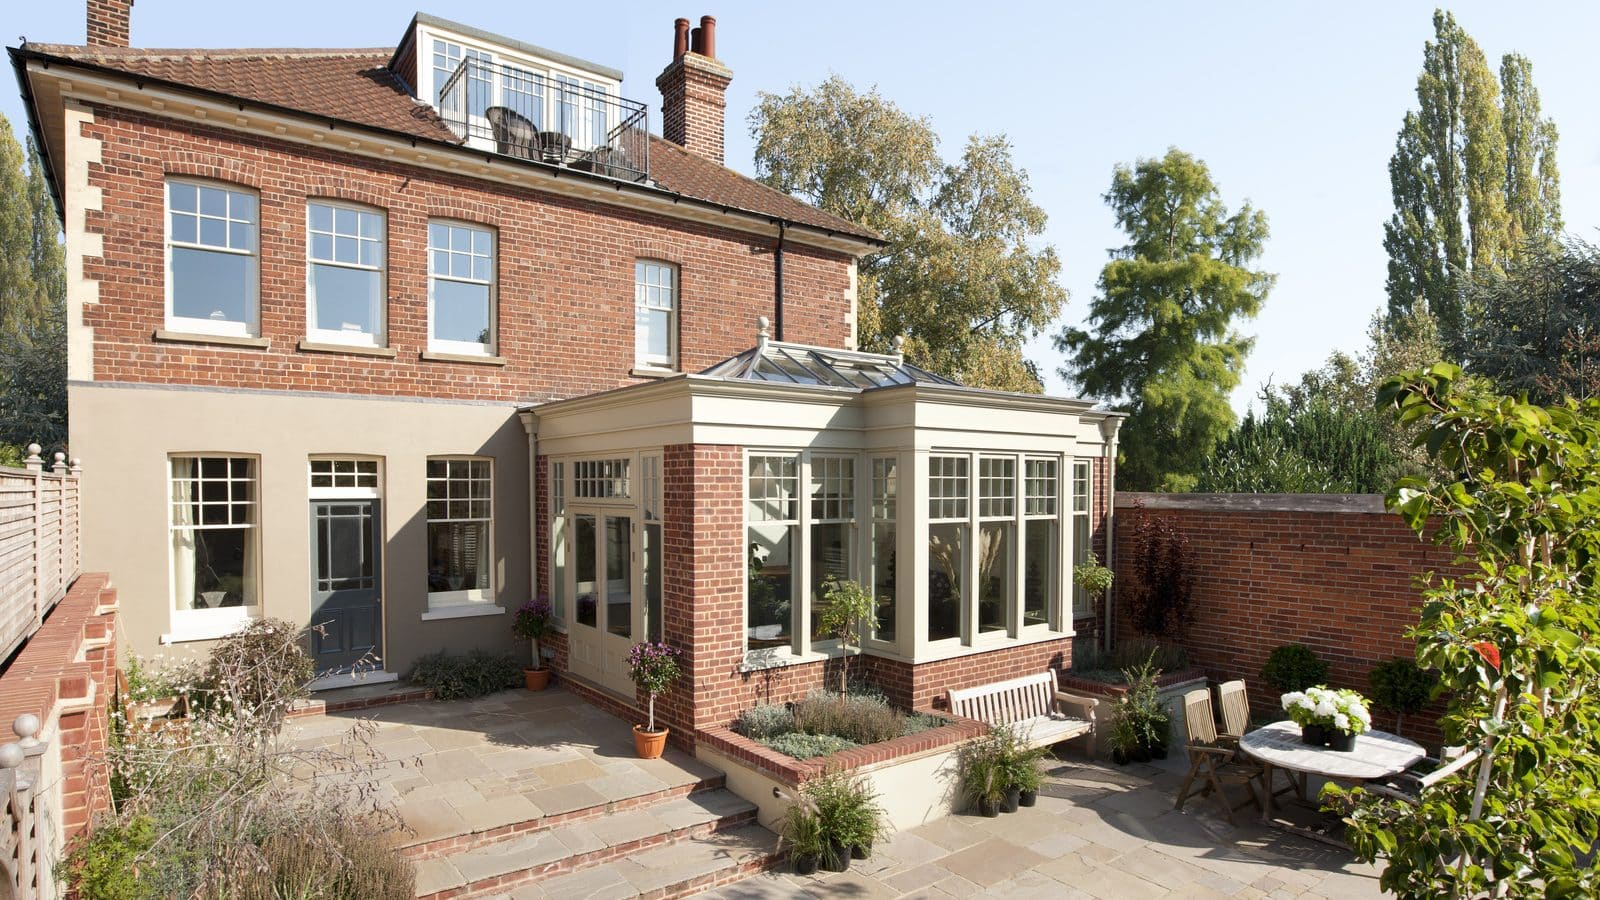 What is the difference between an orangery and a conservatory?